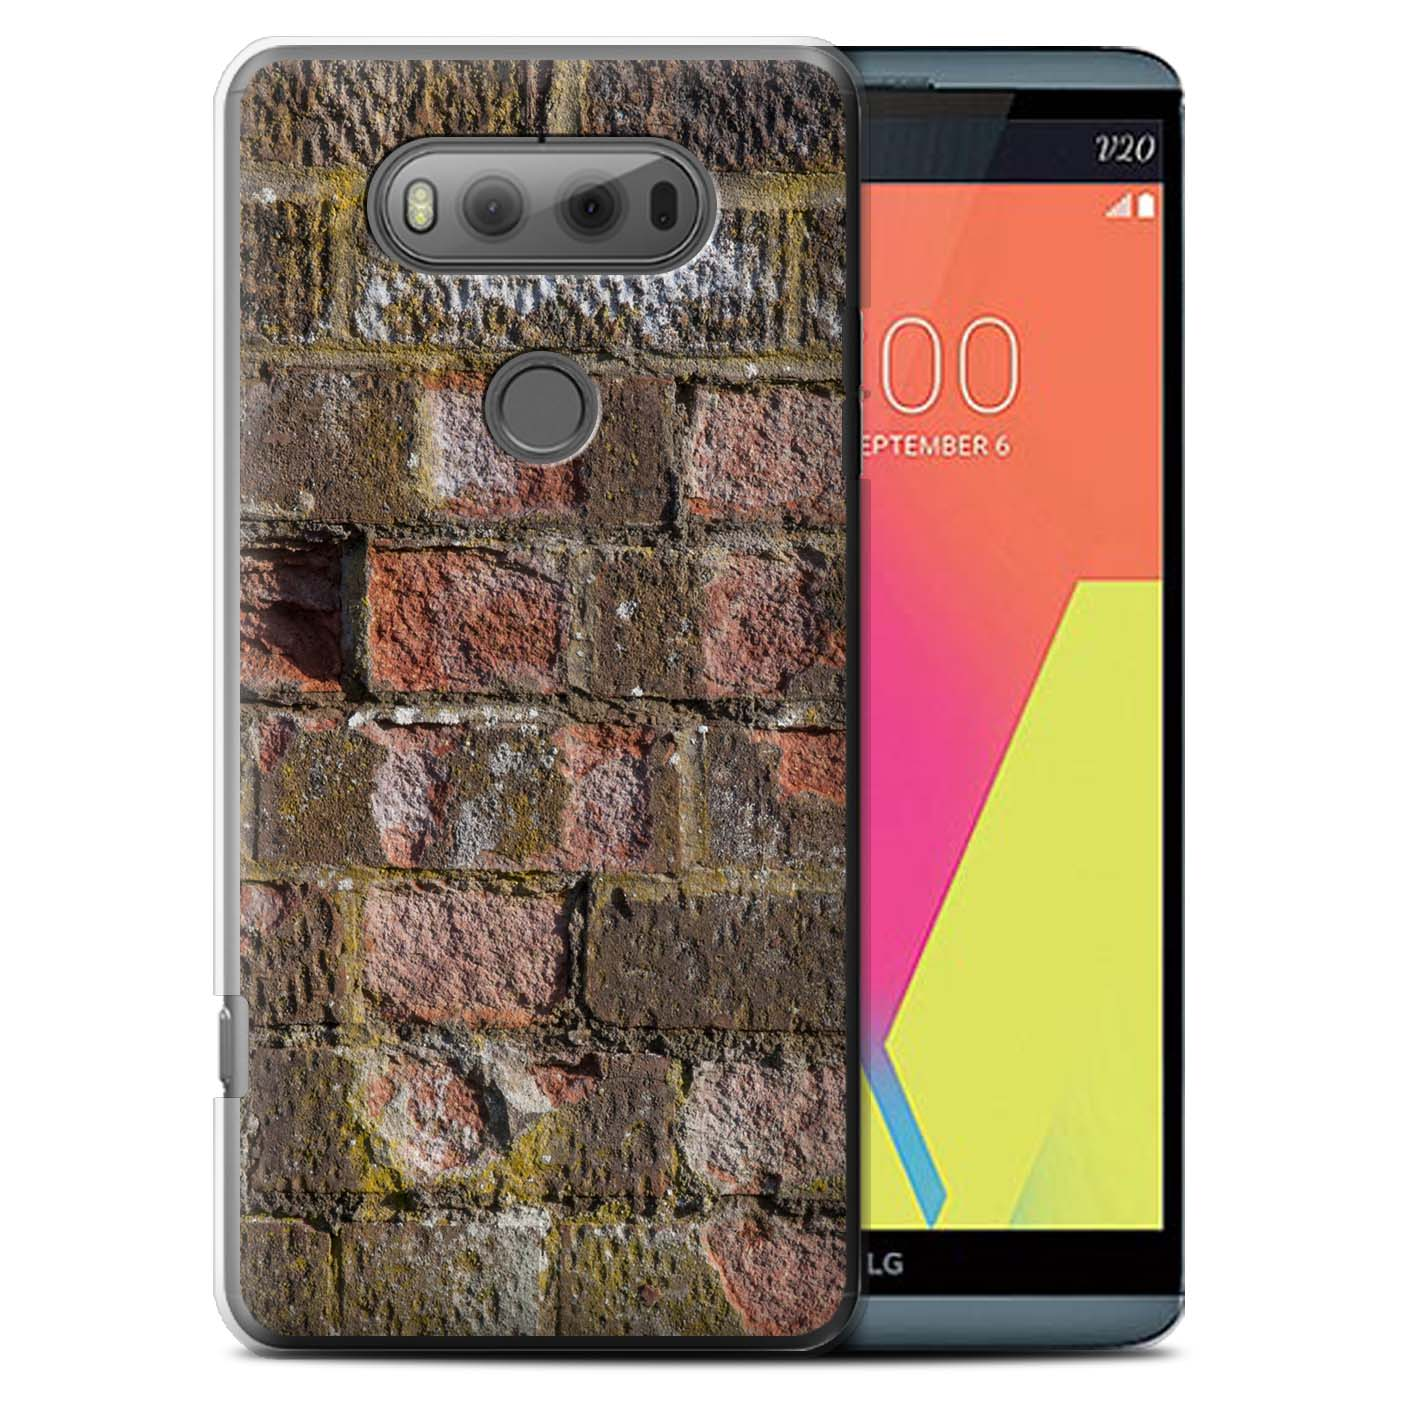 Cement/Red Brickwork Design for Lg V20 F800/H990/Vs995 Clear